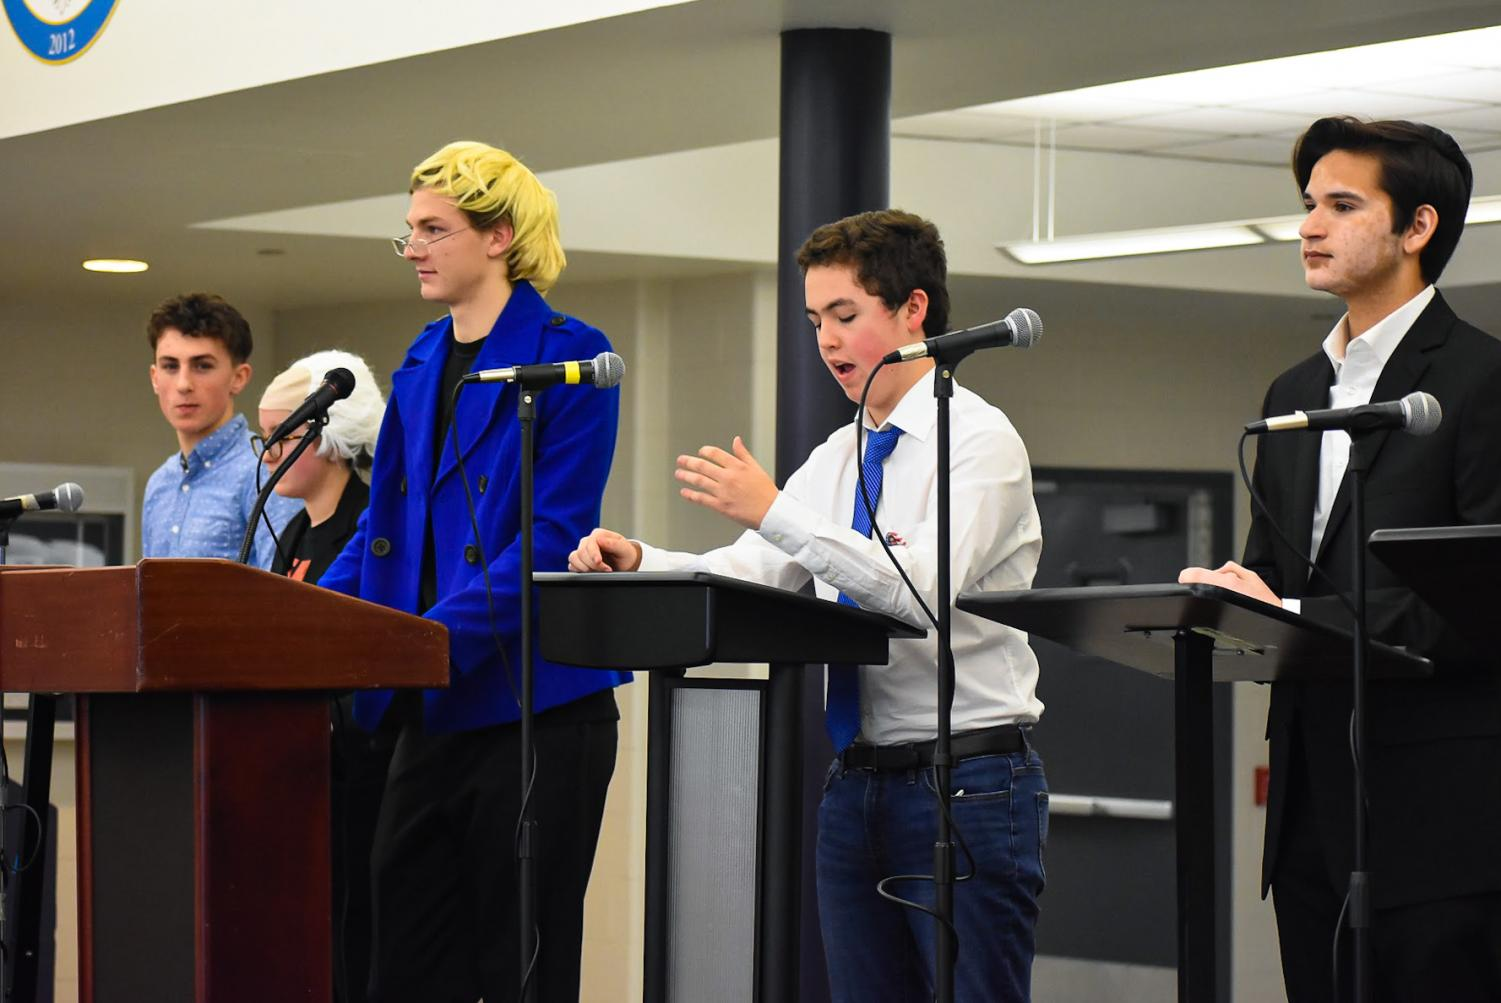 (From left to right) Freshman Joey Esposito of Tinton Falls, sophomore Maggie Schnieder of Wall, senior Colin Martin of Middletown, senior Neil Estrada of Middletown, and junior Kai Sequiera of Middletown during the mock debate on Friday.